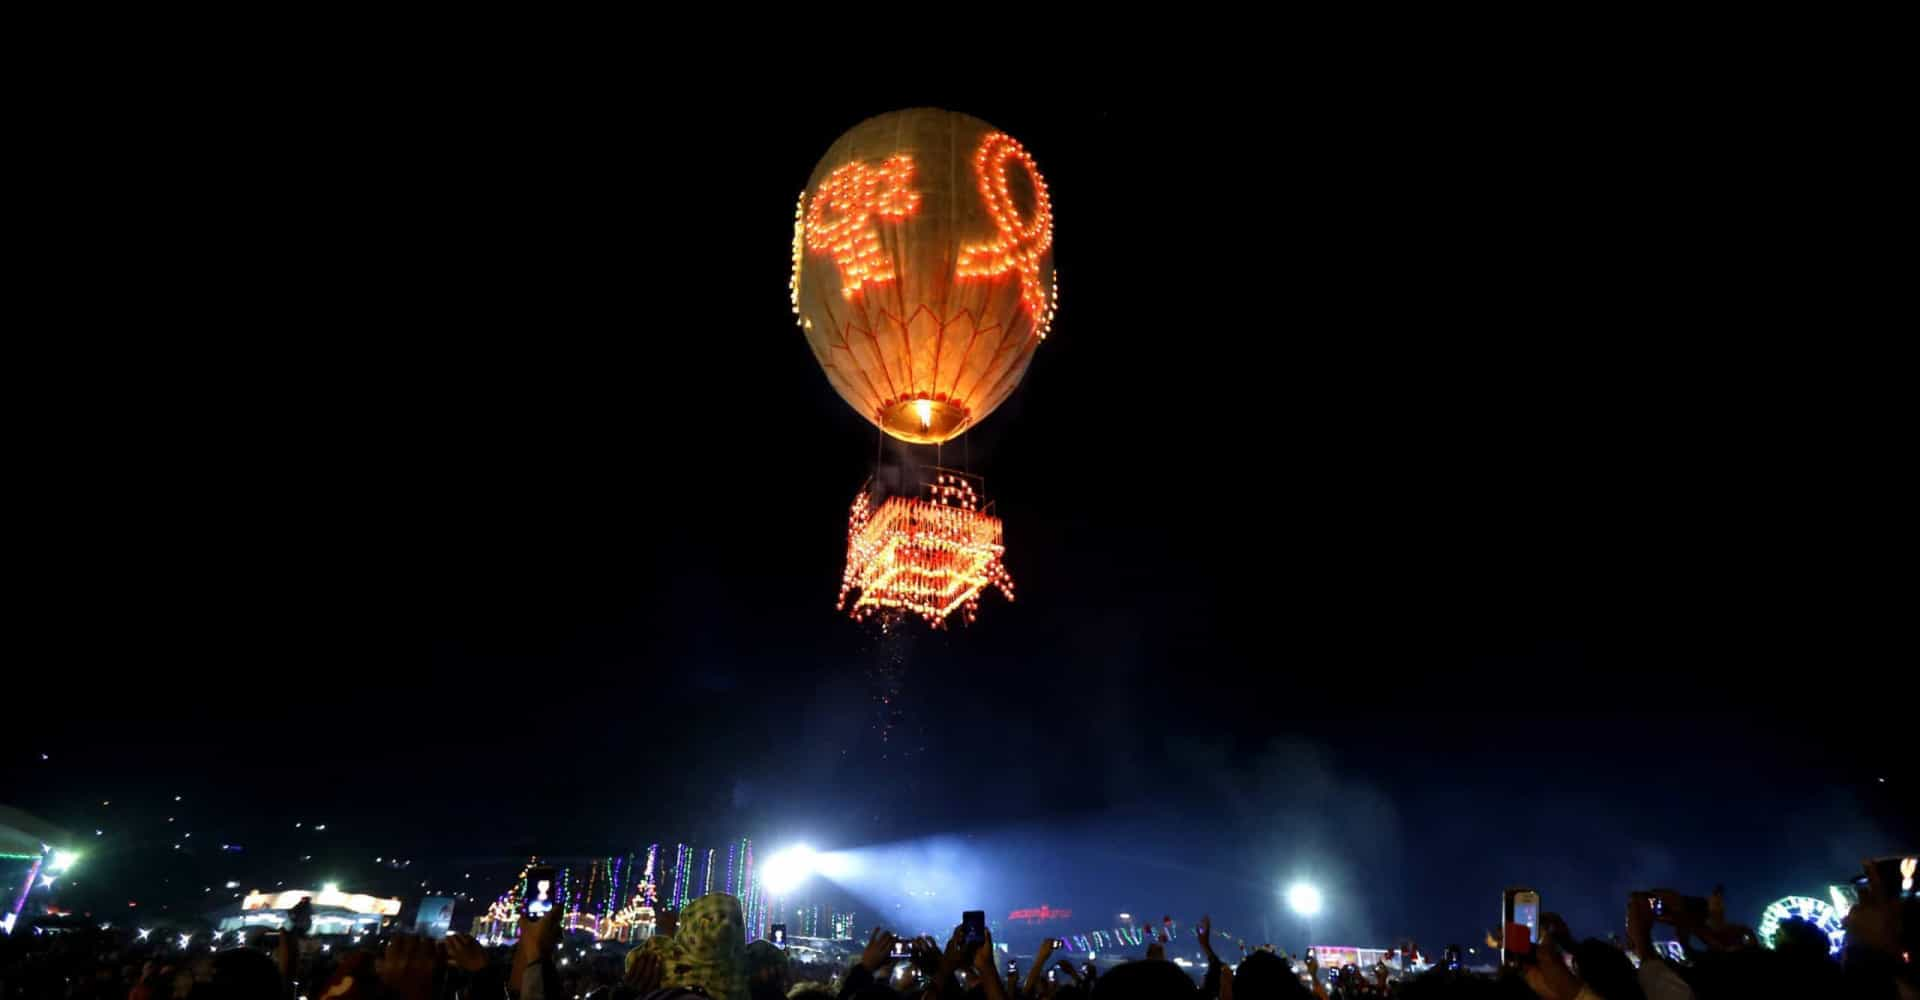 Taunggyi Balloon Festival: a spectacle of light and color